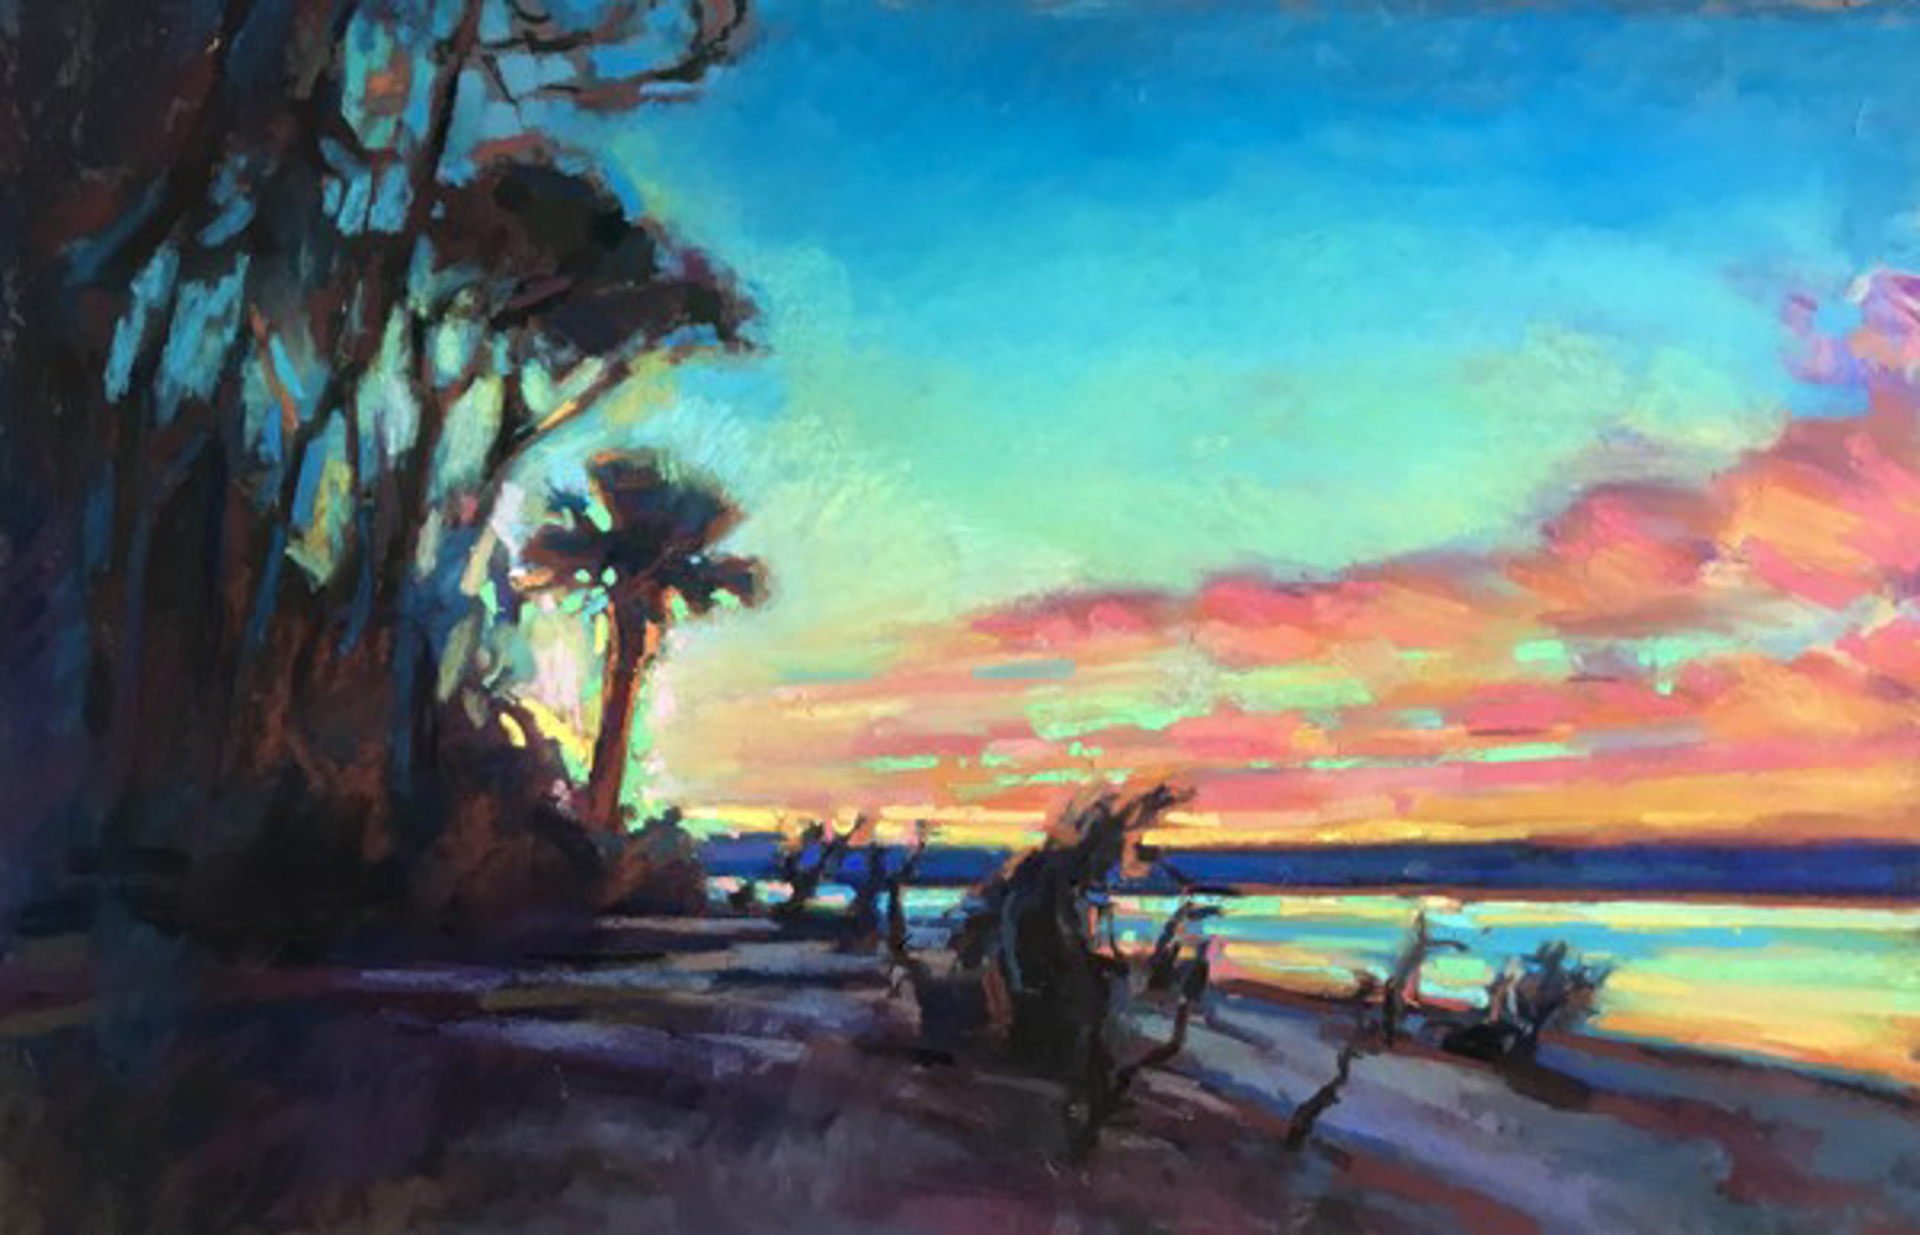 Inlet at Sunrise by Susan Mayfield